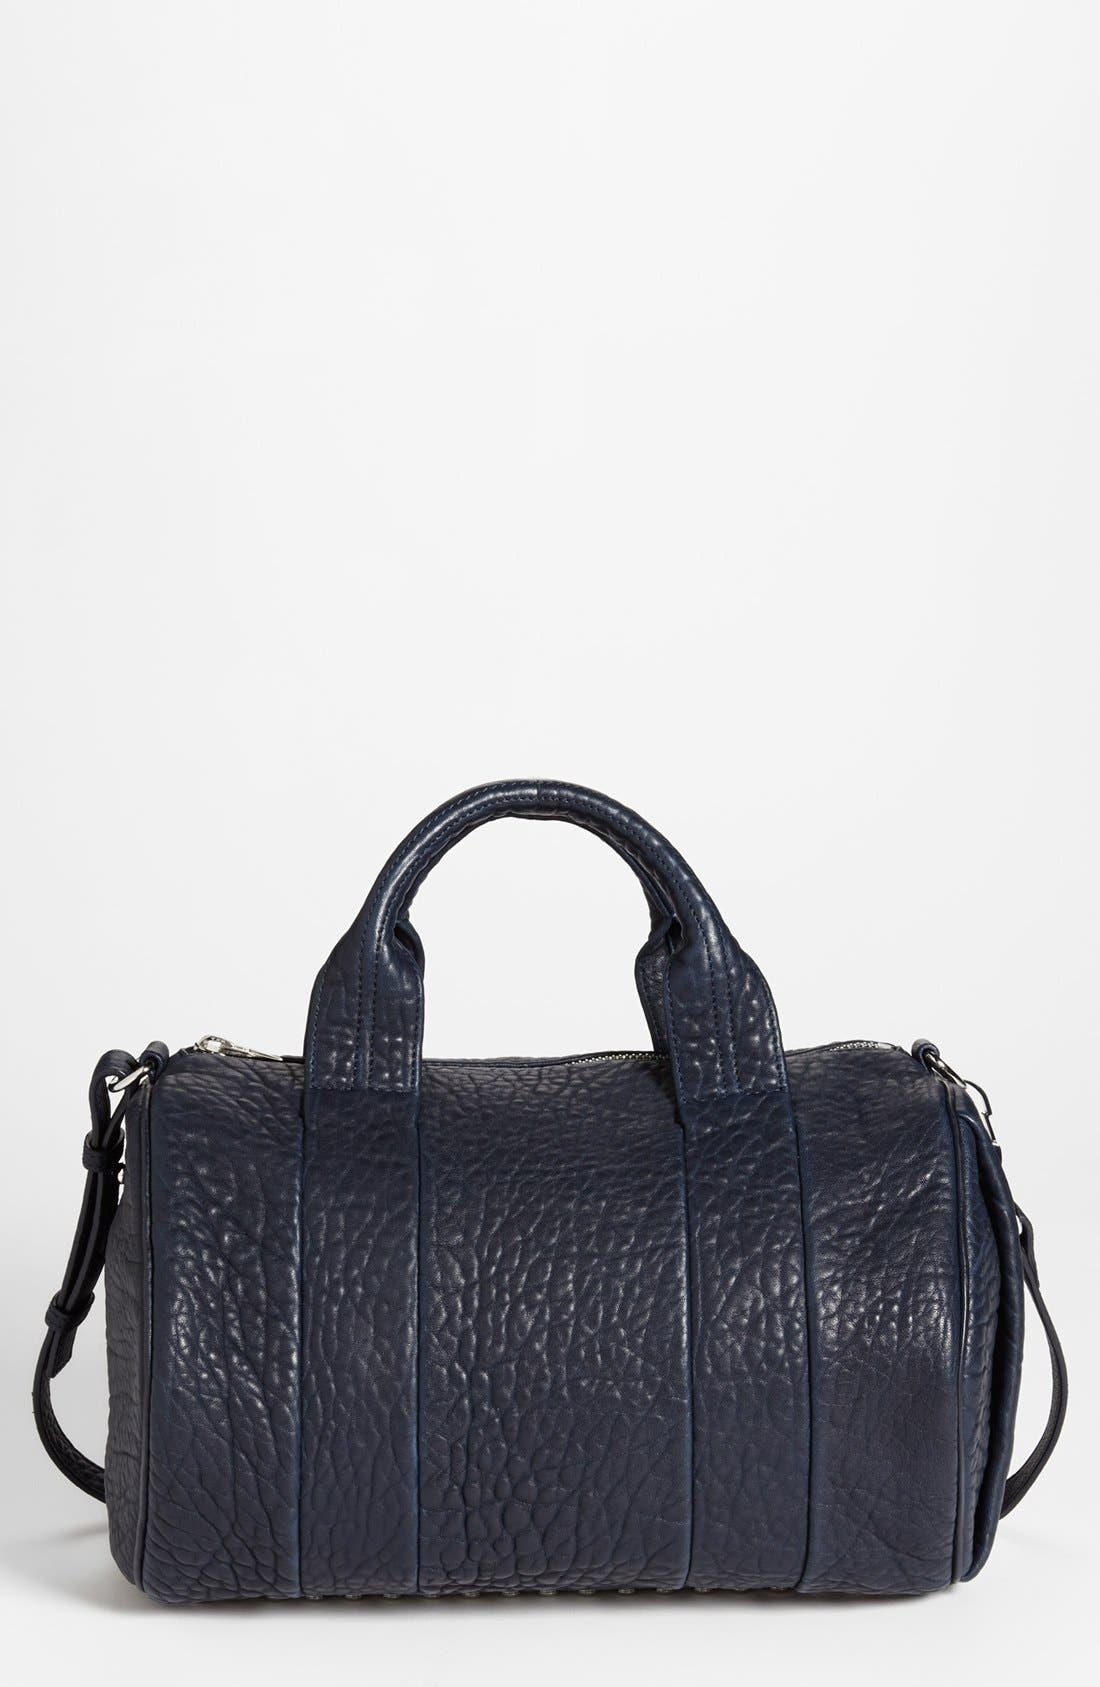 Alternate Image 1 Selected - Alexander Wang 'Rocco - Dumbo Rhodium' Leather Satchel